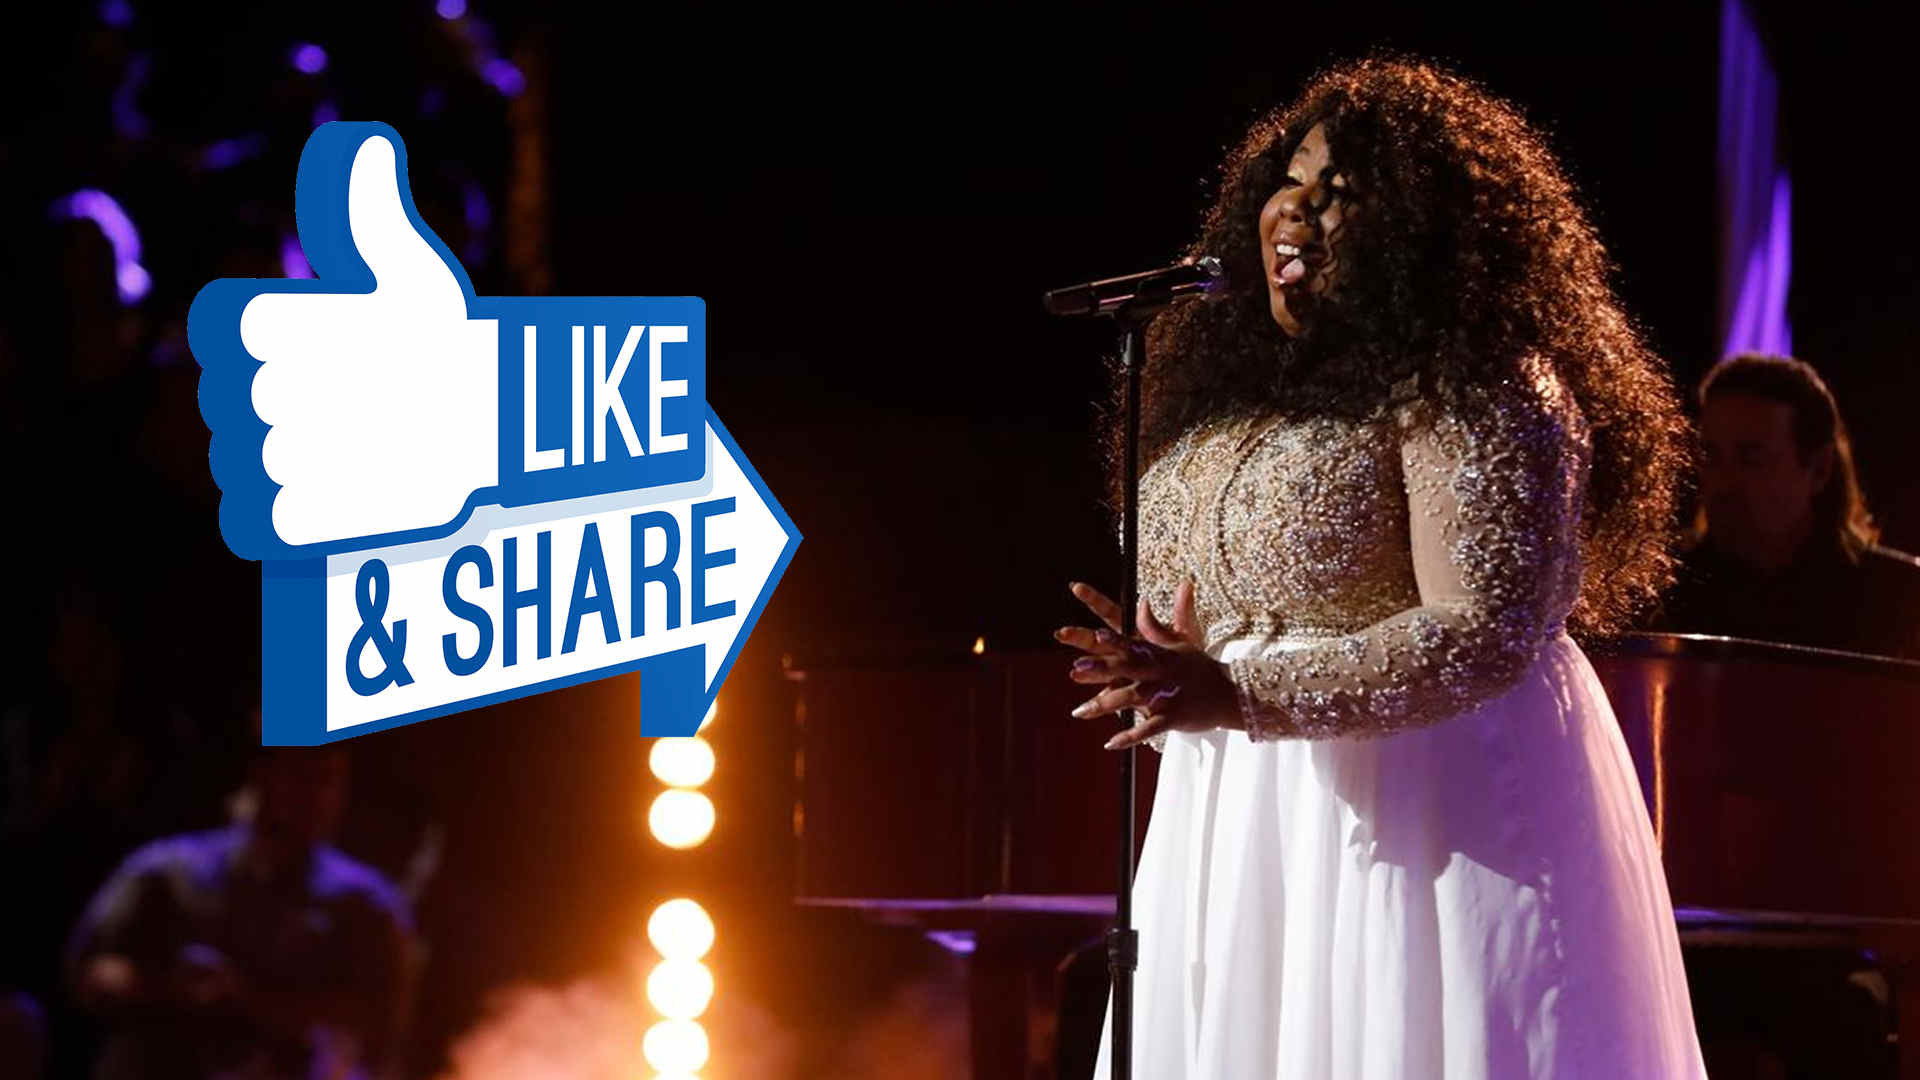 Vote Kayla Jade The Voice 2018 Finale Voting 21 May 2018 With Kayla Jade The Voice 2018 Winner Prediction